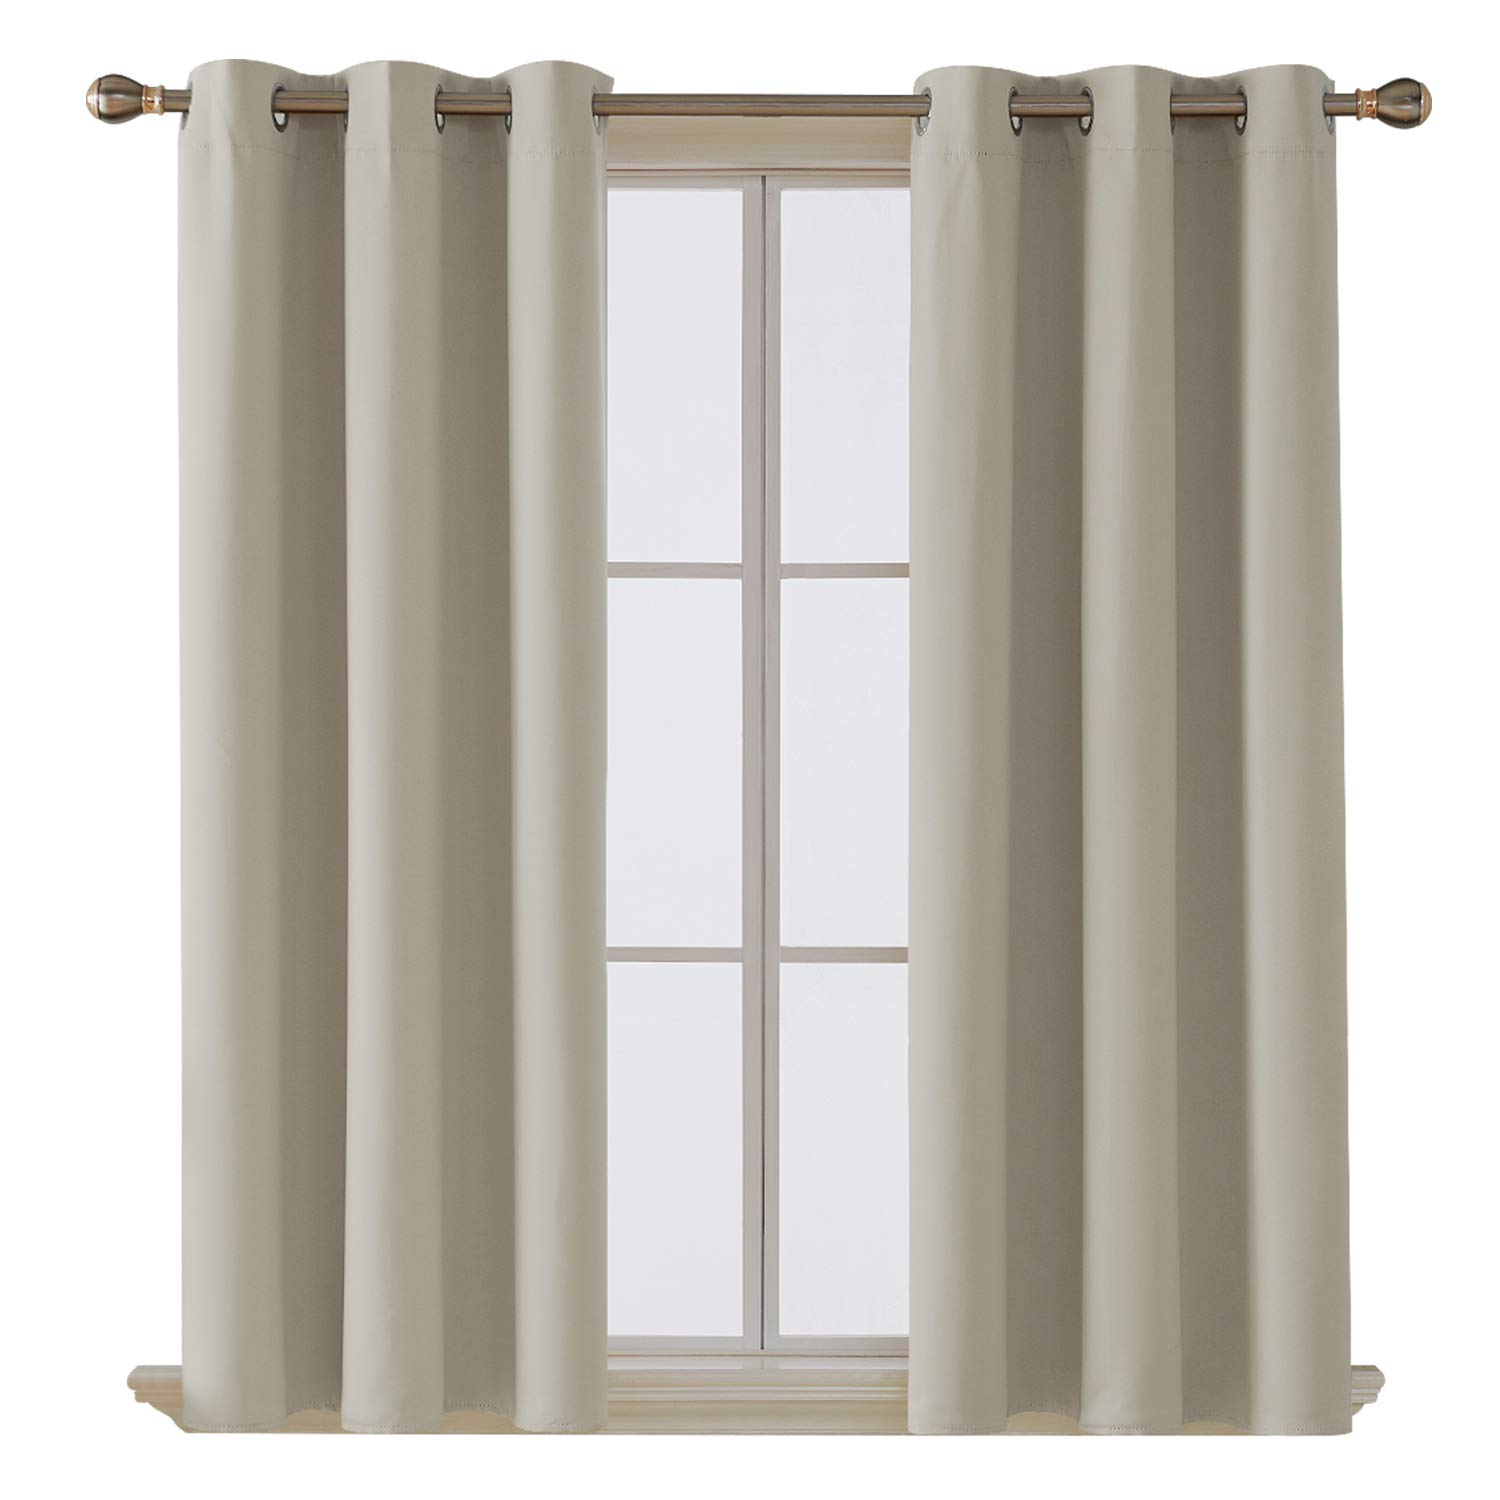 Deconovo Room Darkening Thermal Insulated Blackout Grommet Window Curtain Panel for Living Room, Light Beige, 42x63 Inch, 1 Panel